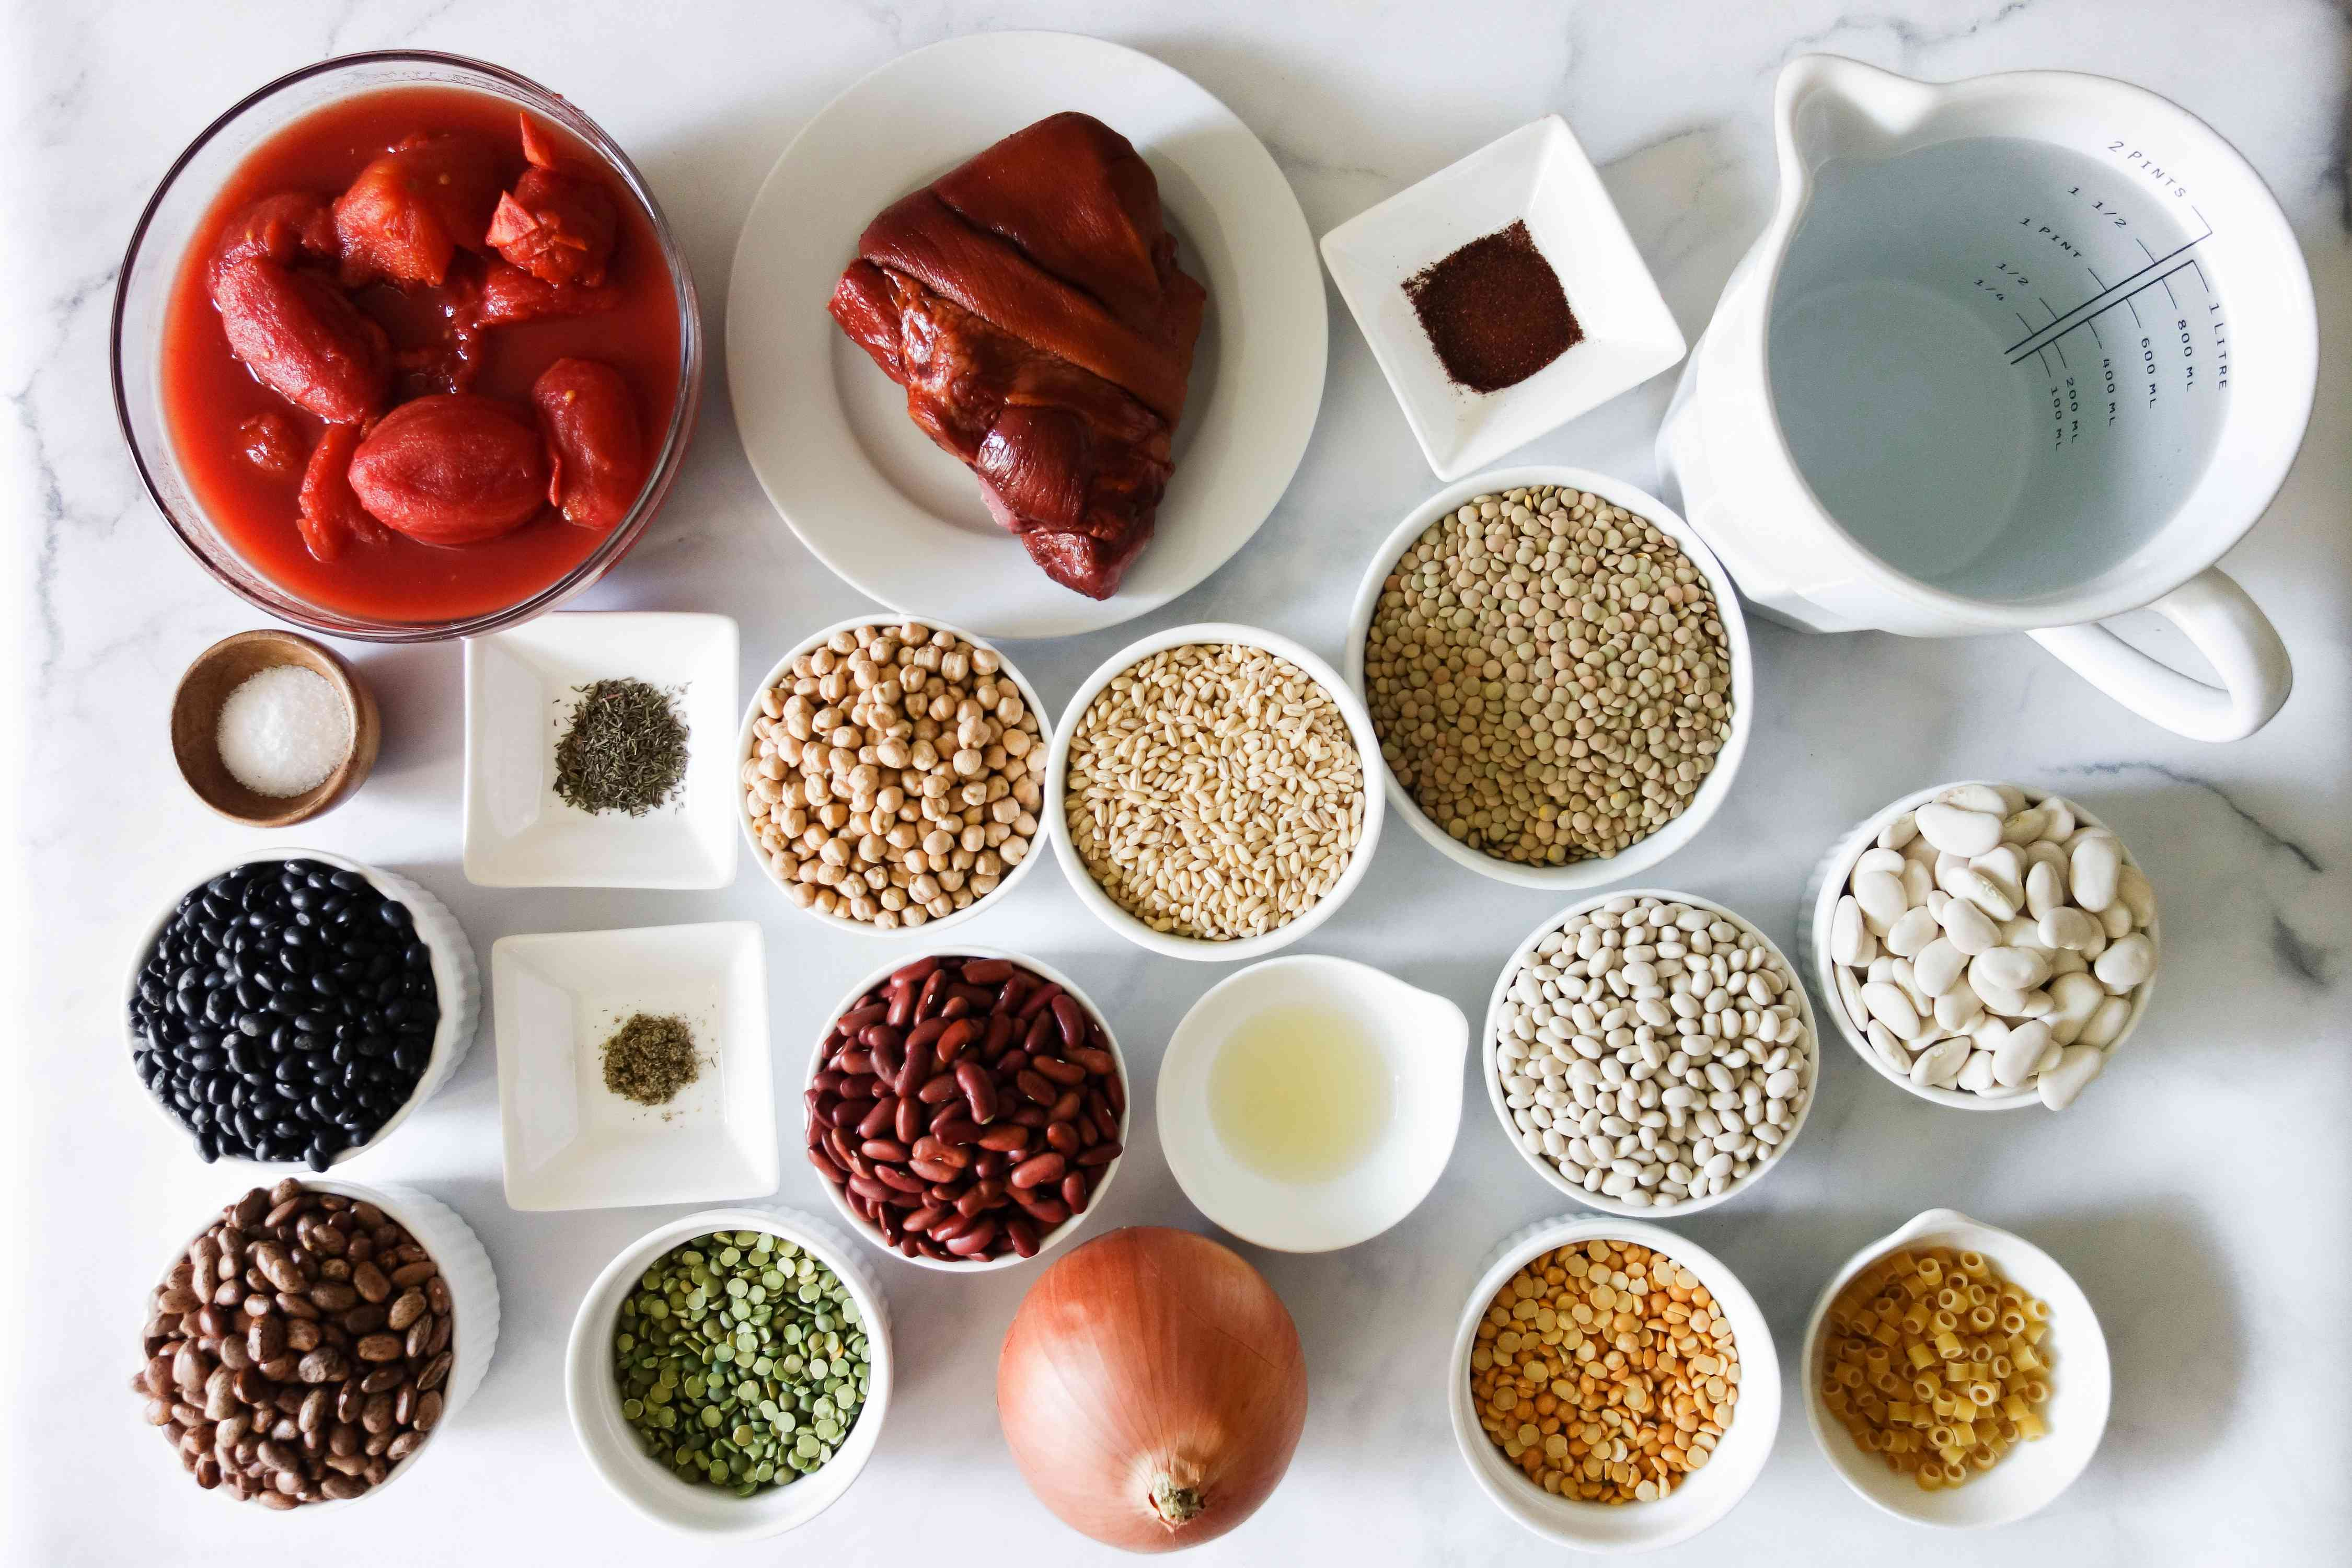 Ingredients for 9-bean soup